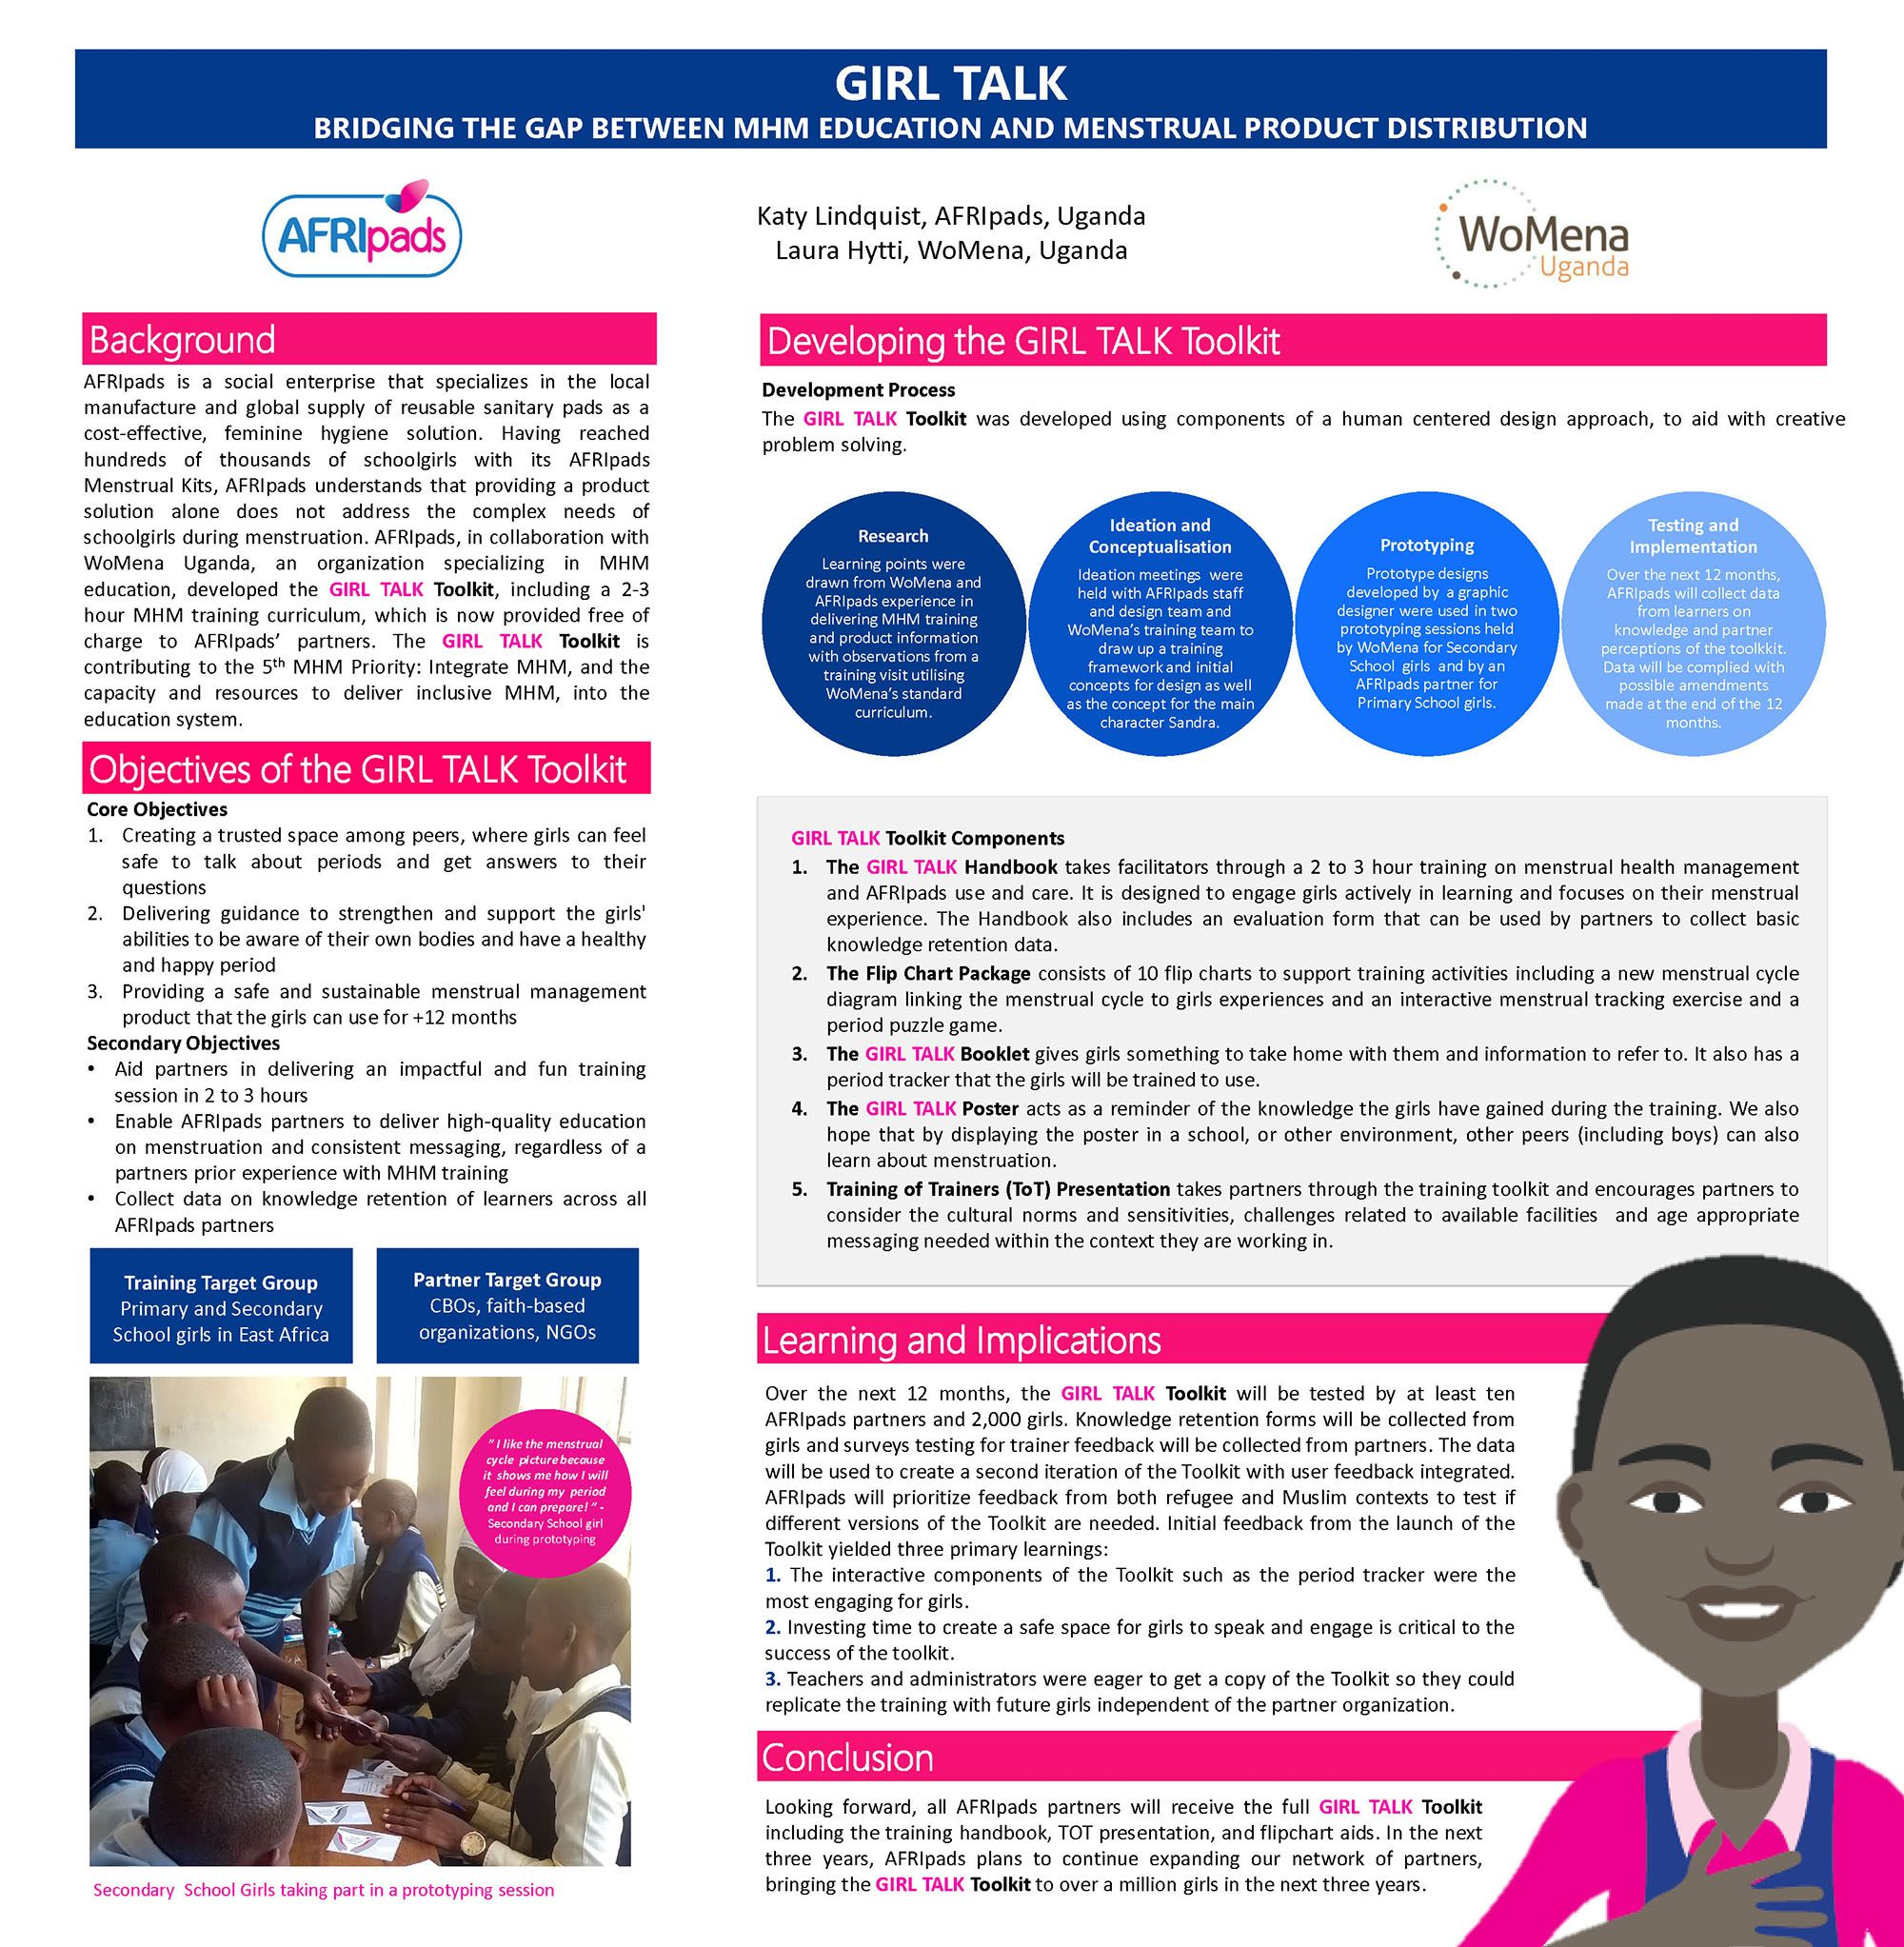 12.-Girl-Talk-Bridging-the-gap-between-MHM-education-and-menstrual-product-distribution-2000x2045